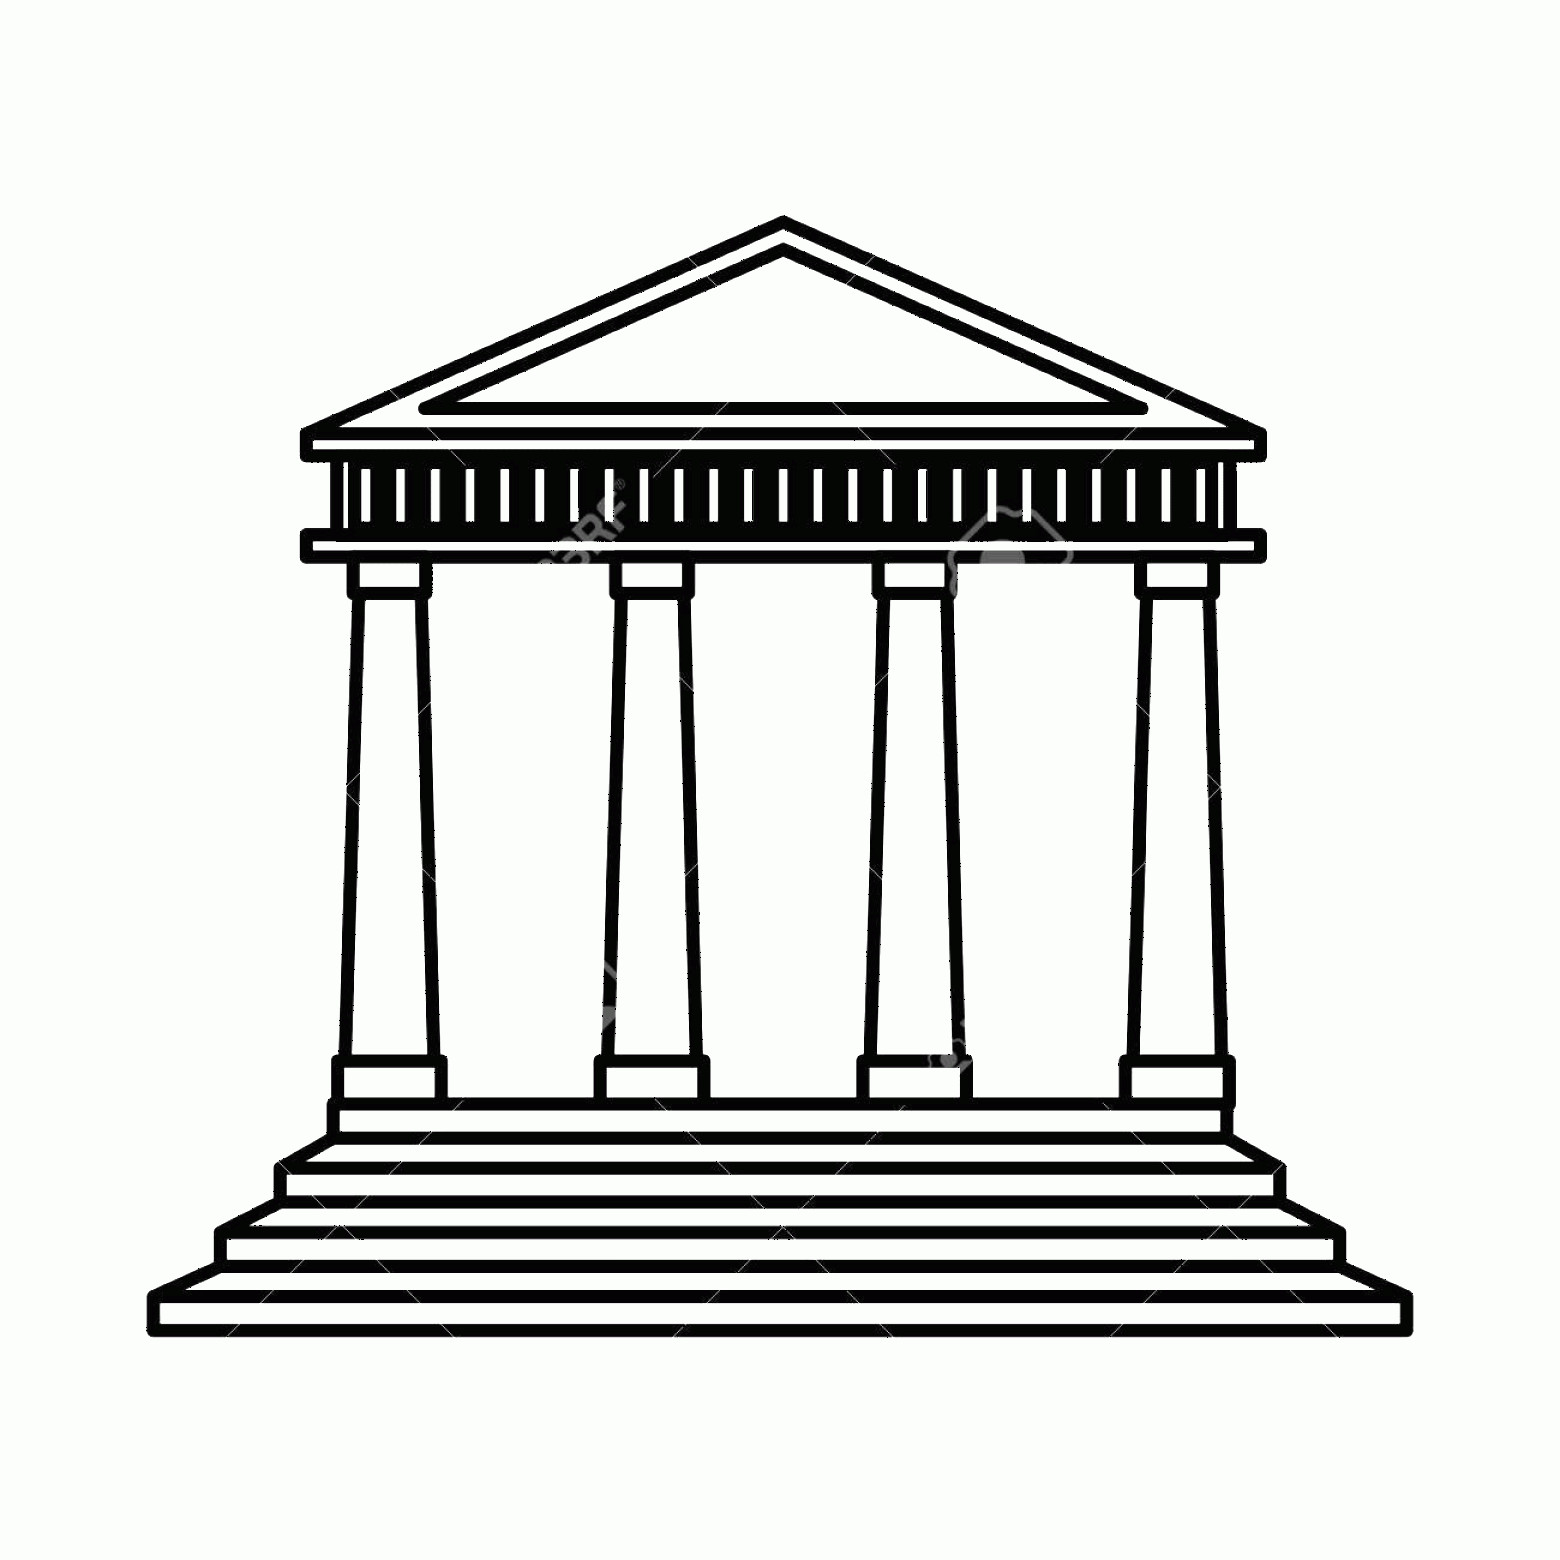 Court Building Vector: Photocourt Building Isolated Icon Vector Illustration Design